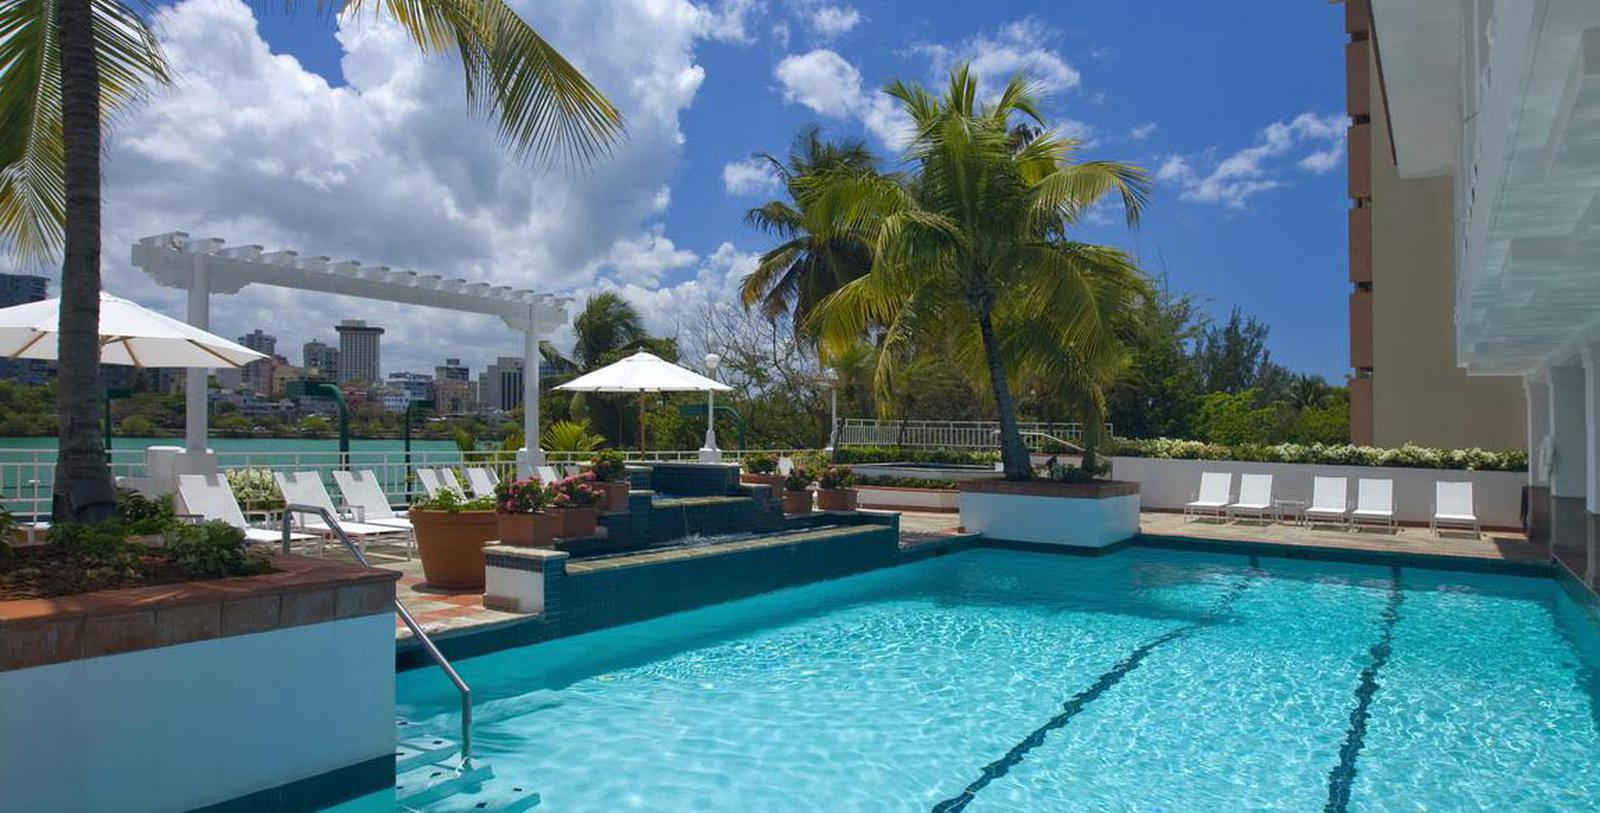 Image of Pool The Condado Plaza Hilton, 1963, Member of Historic Hotels of America, in San Juan, Puerto, Rico, Hot Deals